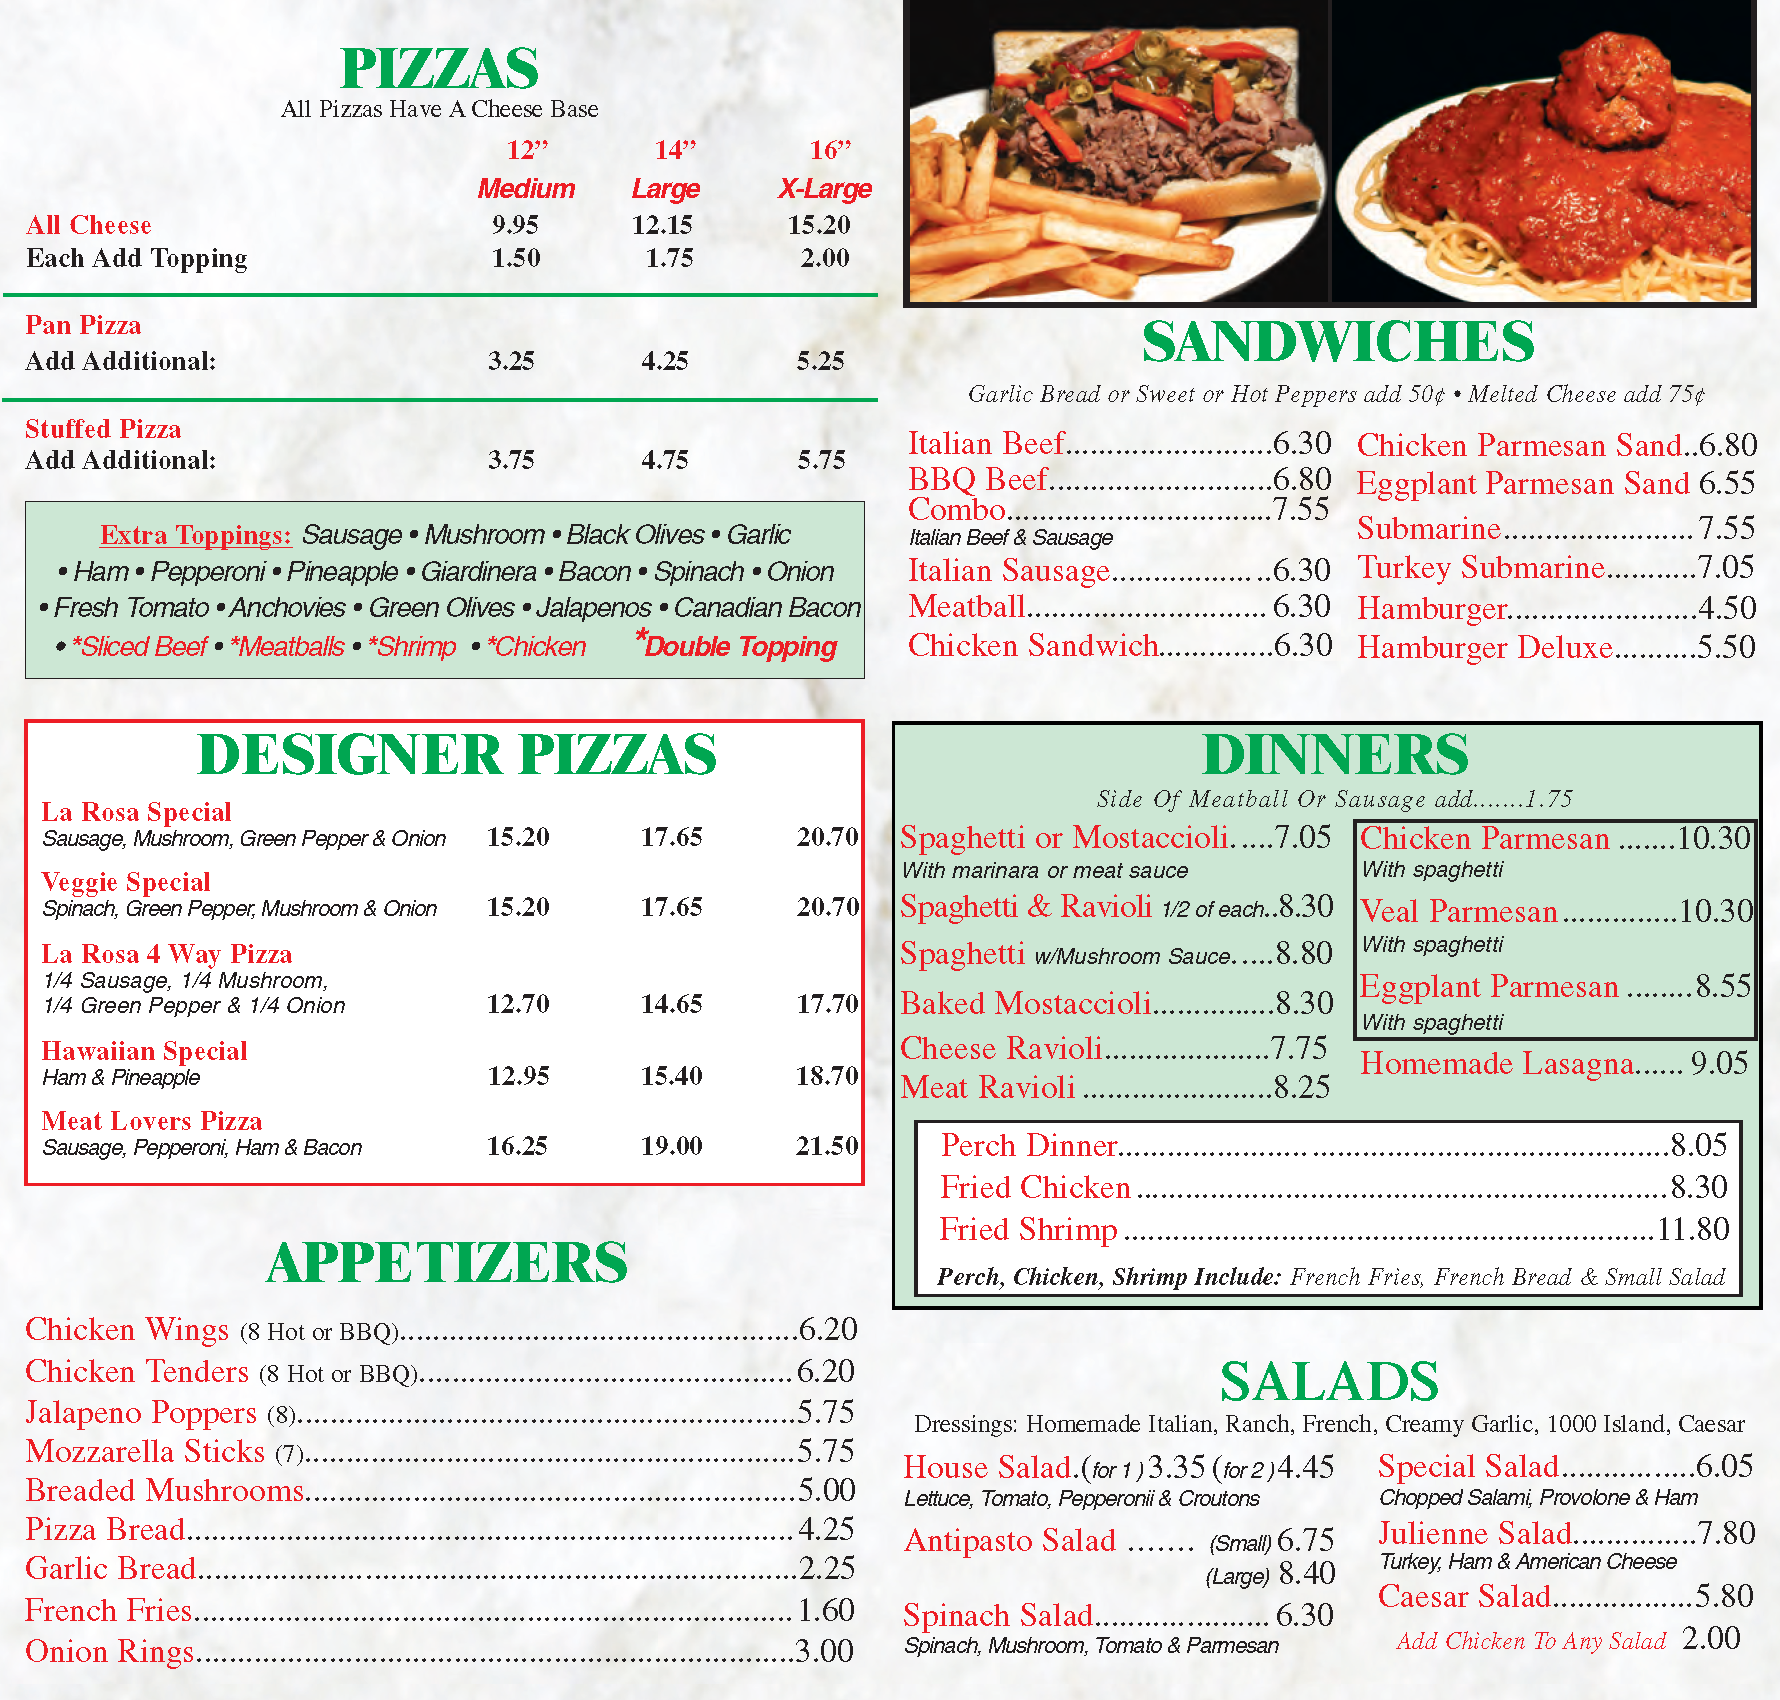 La Rosa Pizza On Golf Home Of Italian Beef Recipes Restaurant Listings And Reviews